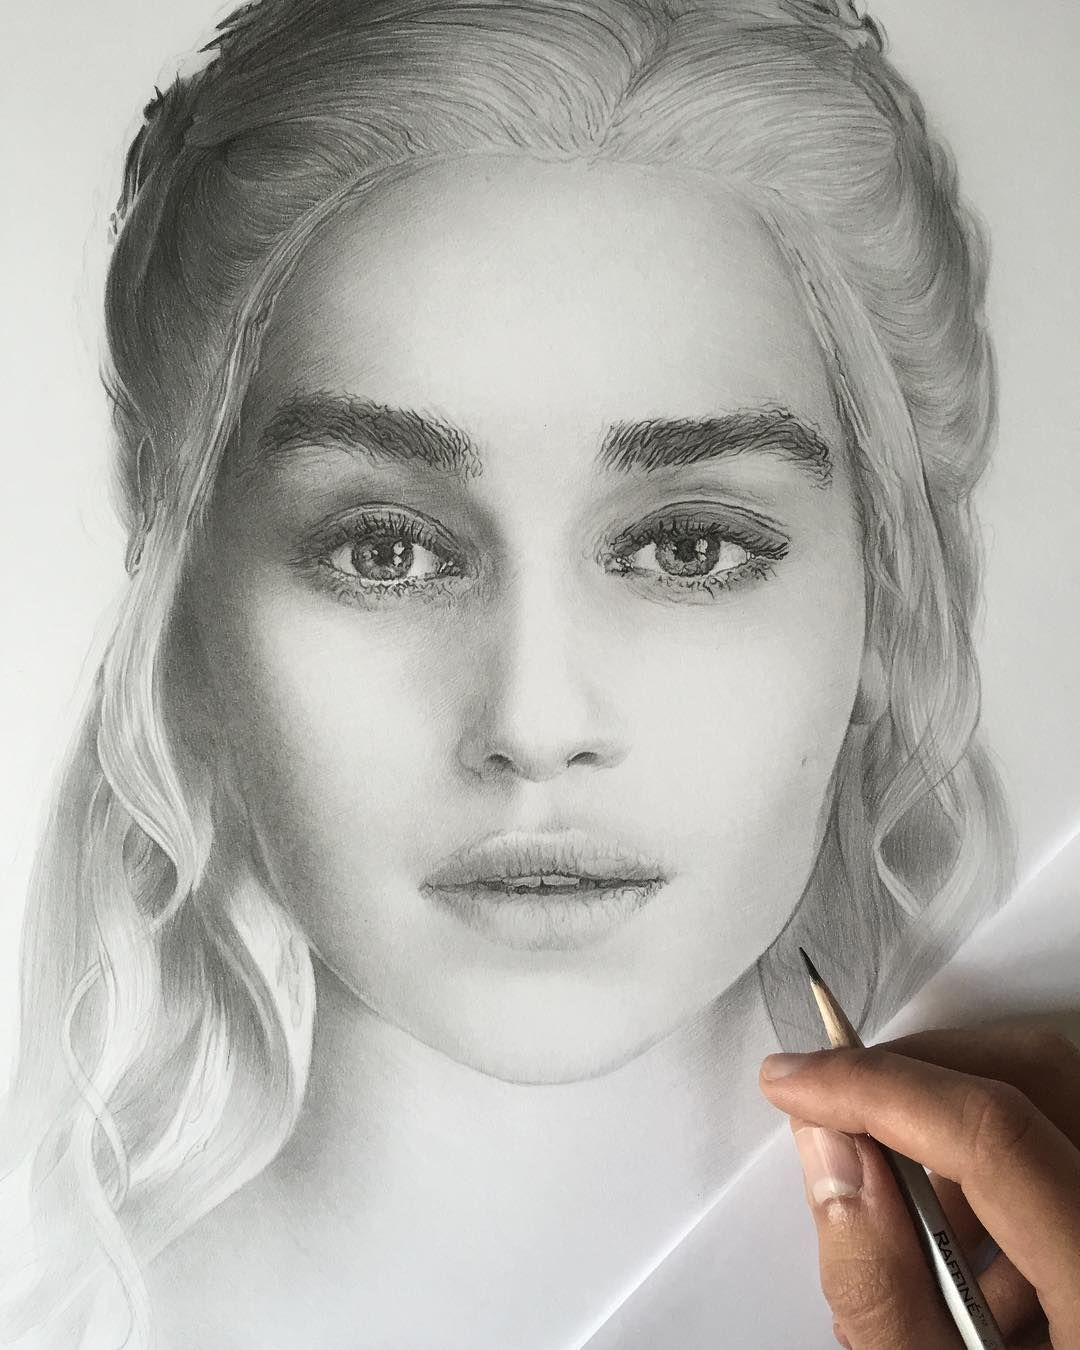 I will draw your portrait highly detailed pencil portrait